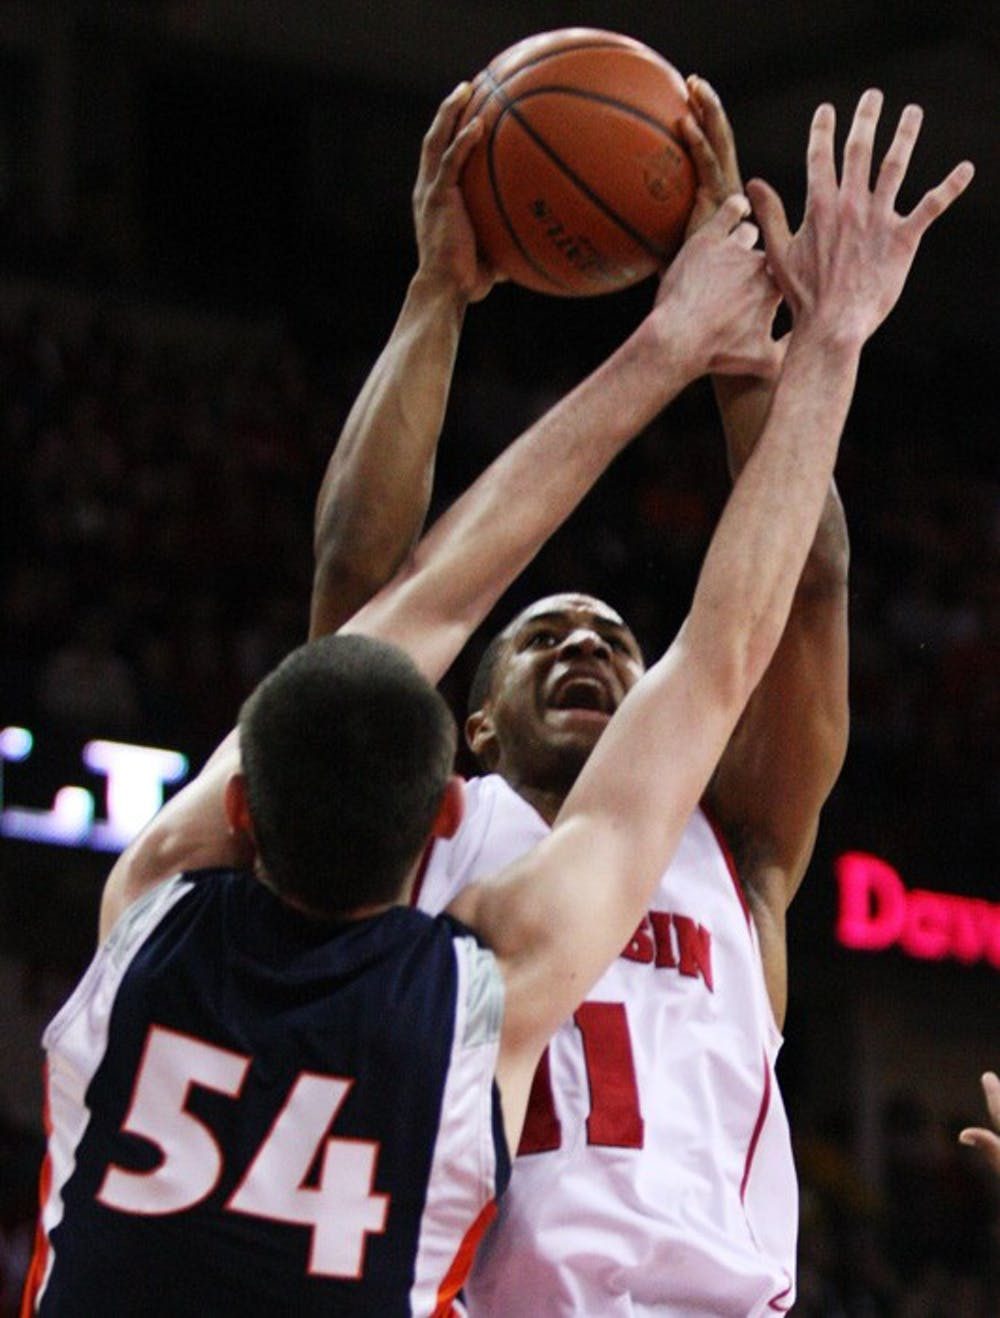 Badgers go cold late, suffer first home loss